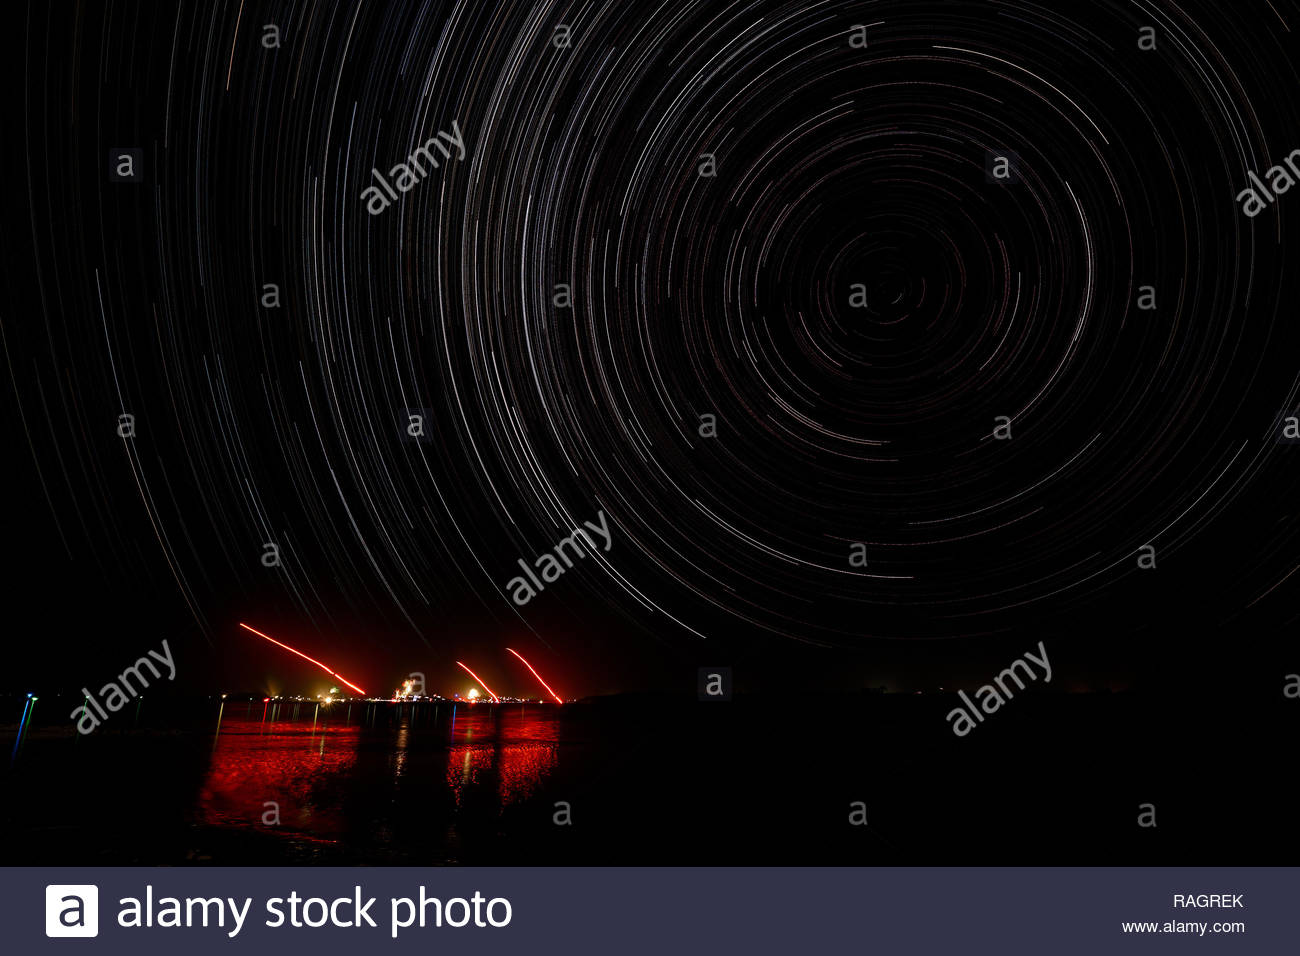 A wide-angled star-trail image, depicting the south celestial pole and fireworks;  above the Australian coastal town of Yamba, New Year's Eve 2018. - Stock Image